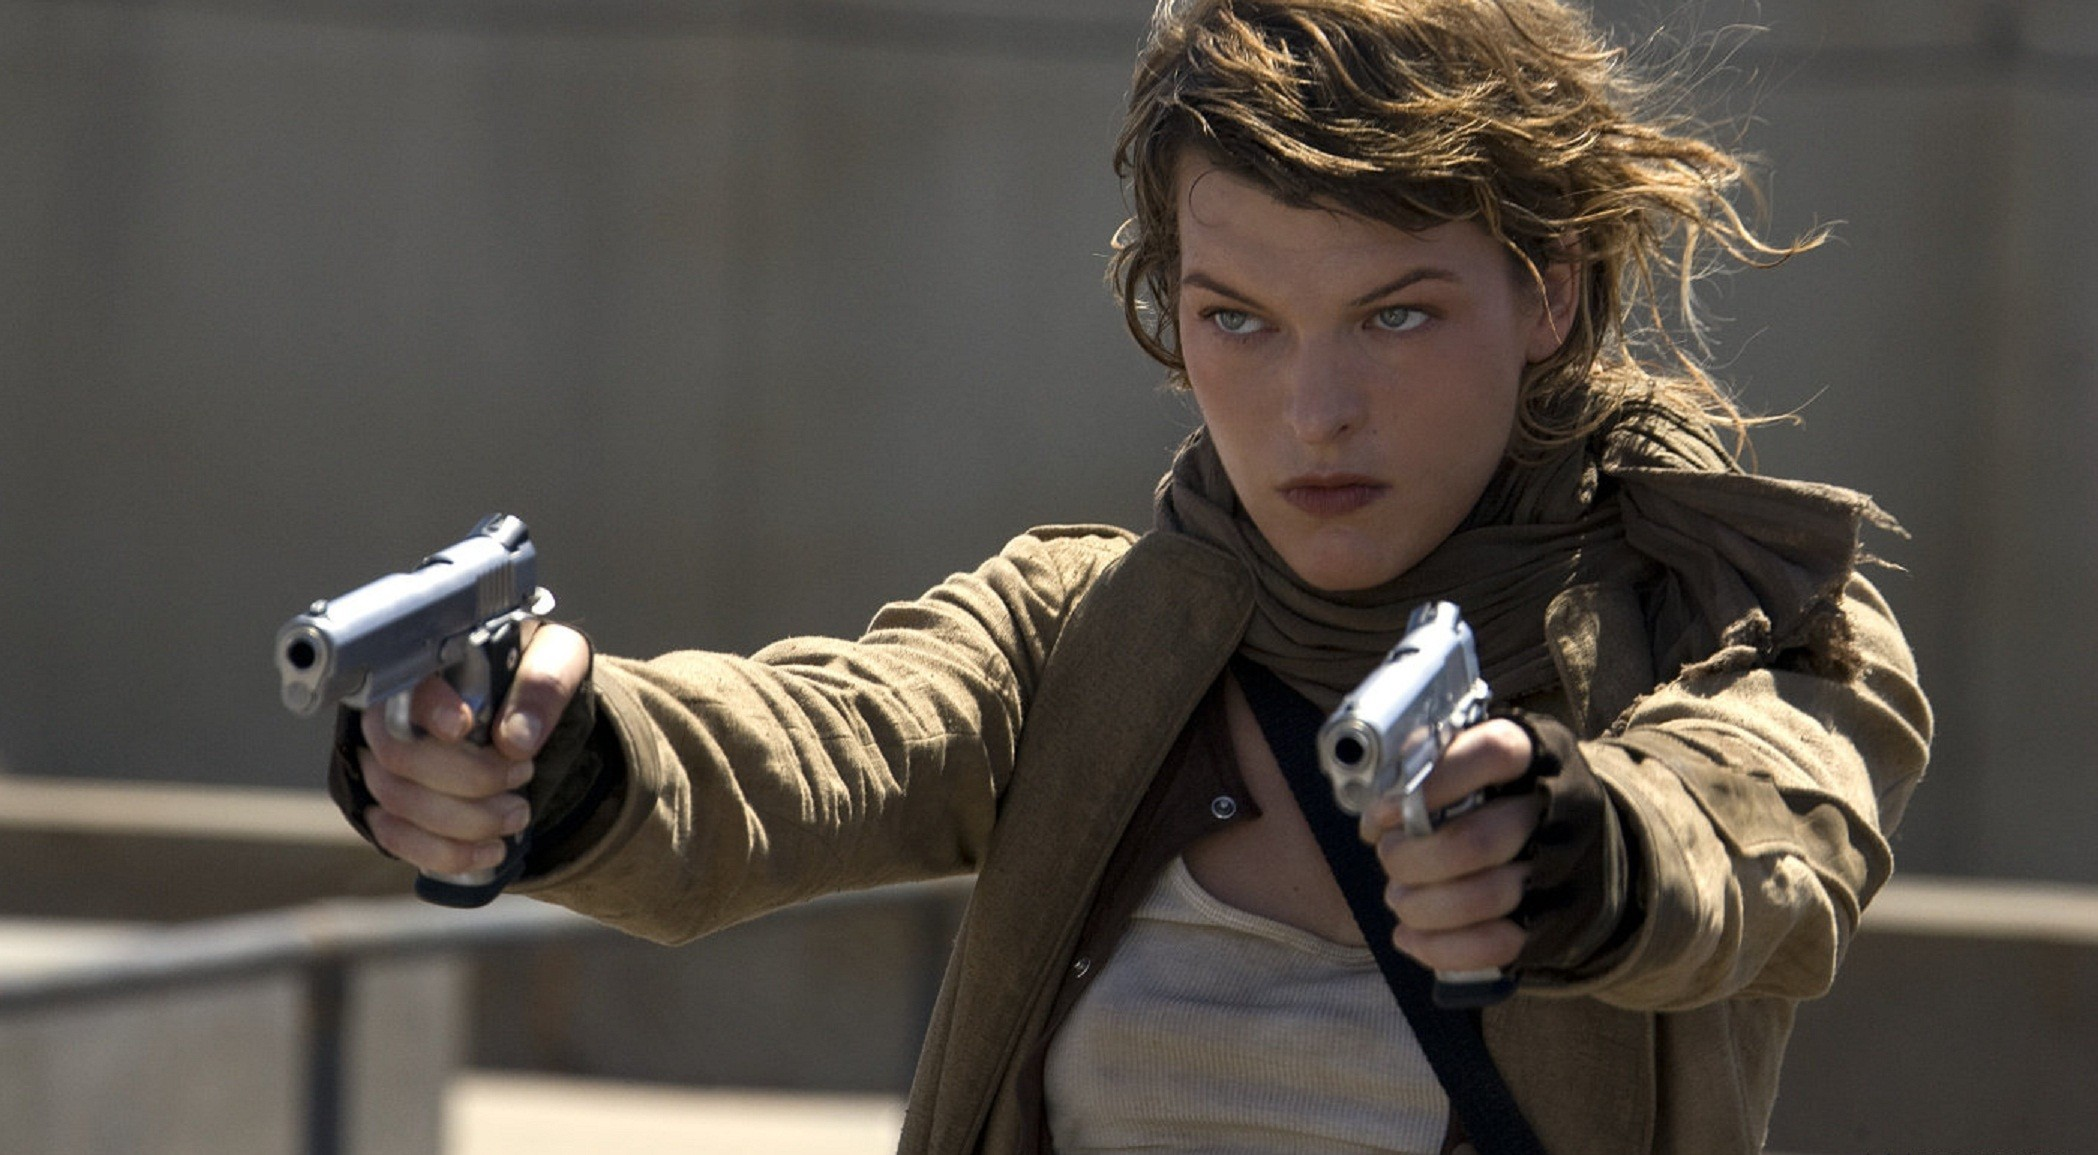 Movies Actress Resident Evil HD Wallpaper